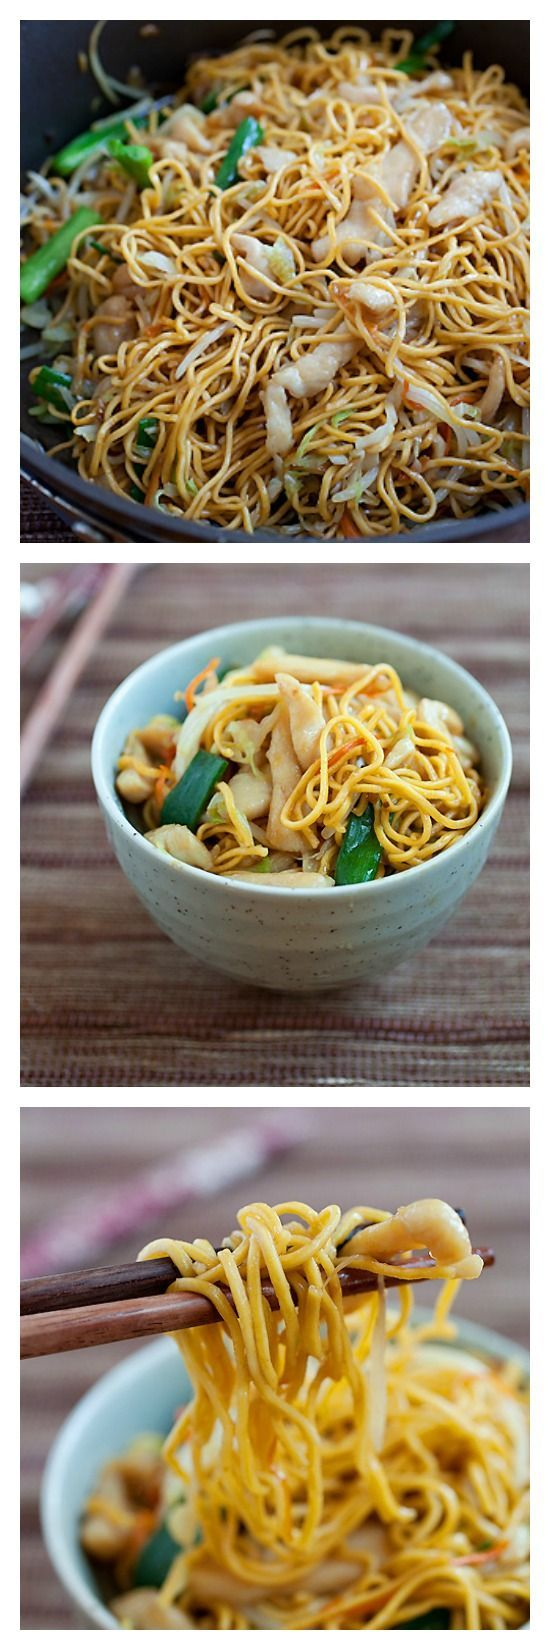 Best 25 chicken chow mein ideas on pinterest chicken chow mein china crazy delicious chicken chow mein try this easy 15 minute recipe forumfinder Images